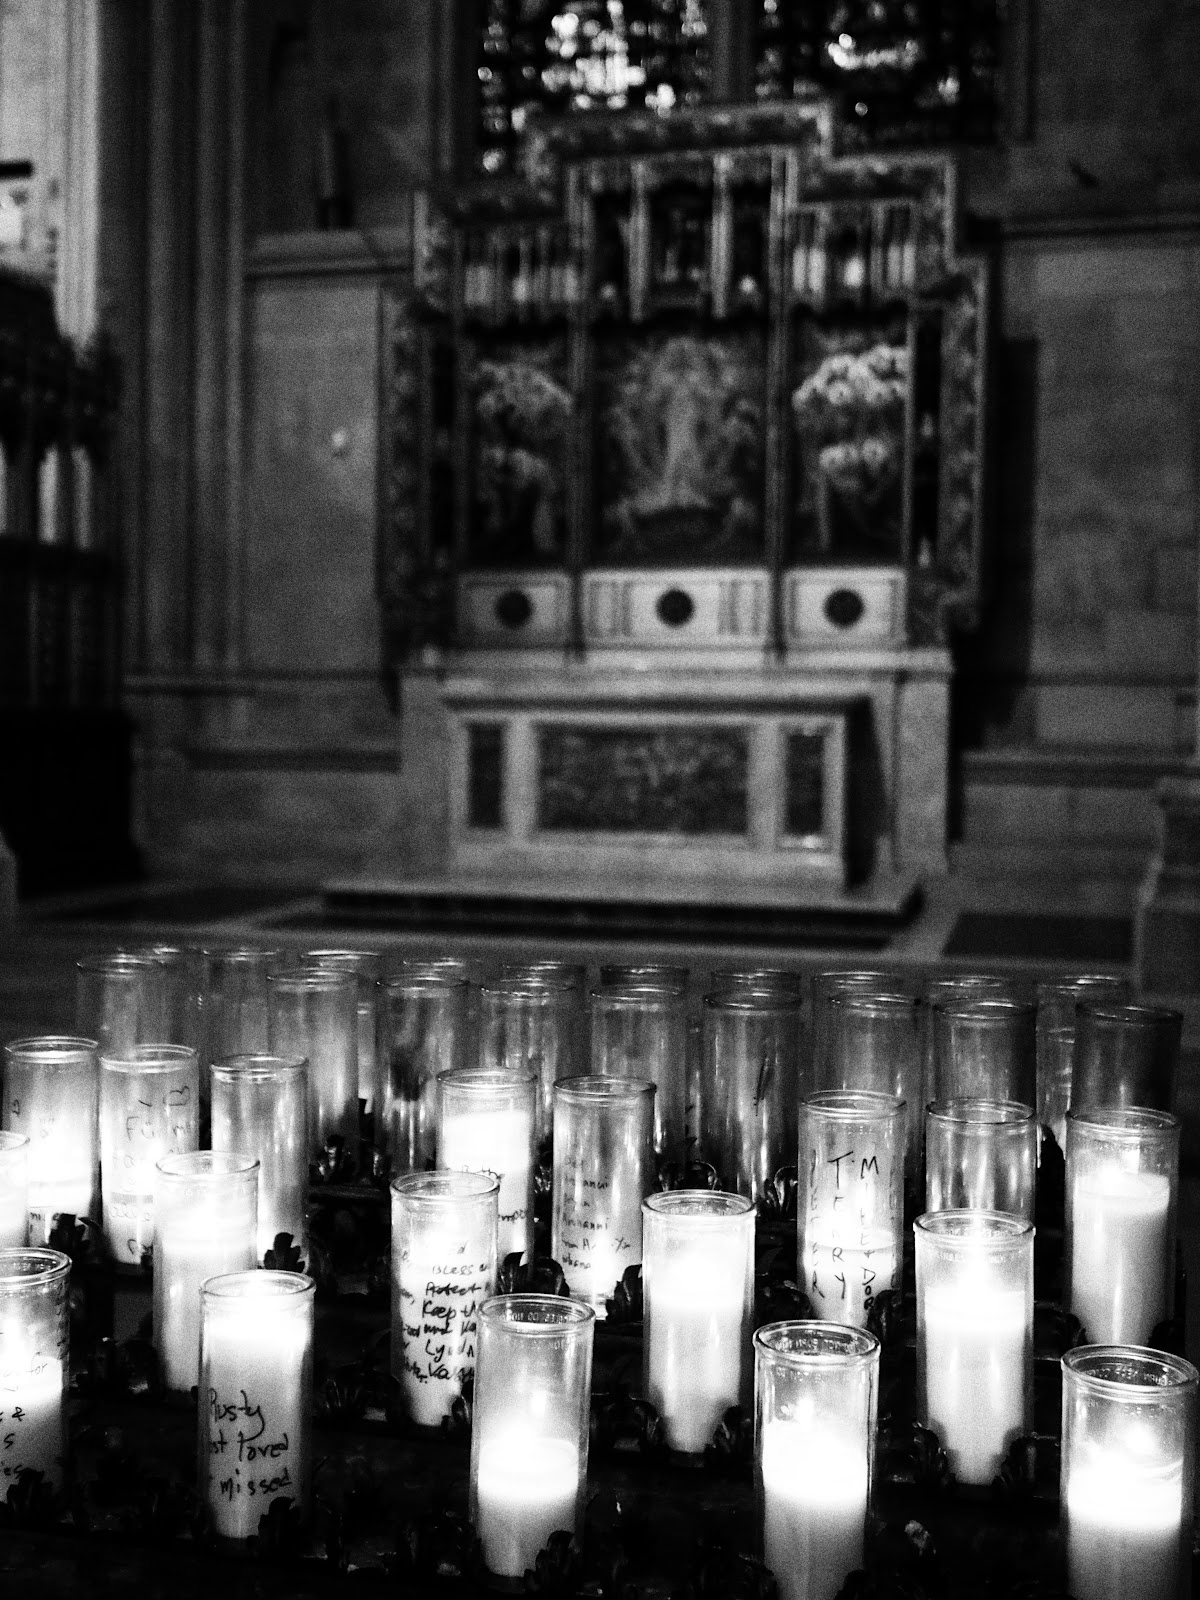 Remembering #remembering #stjohnthedivinecathedral #silence #hope